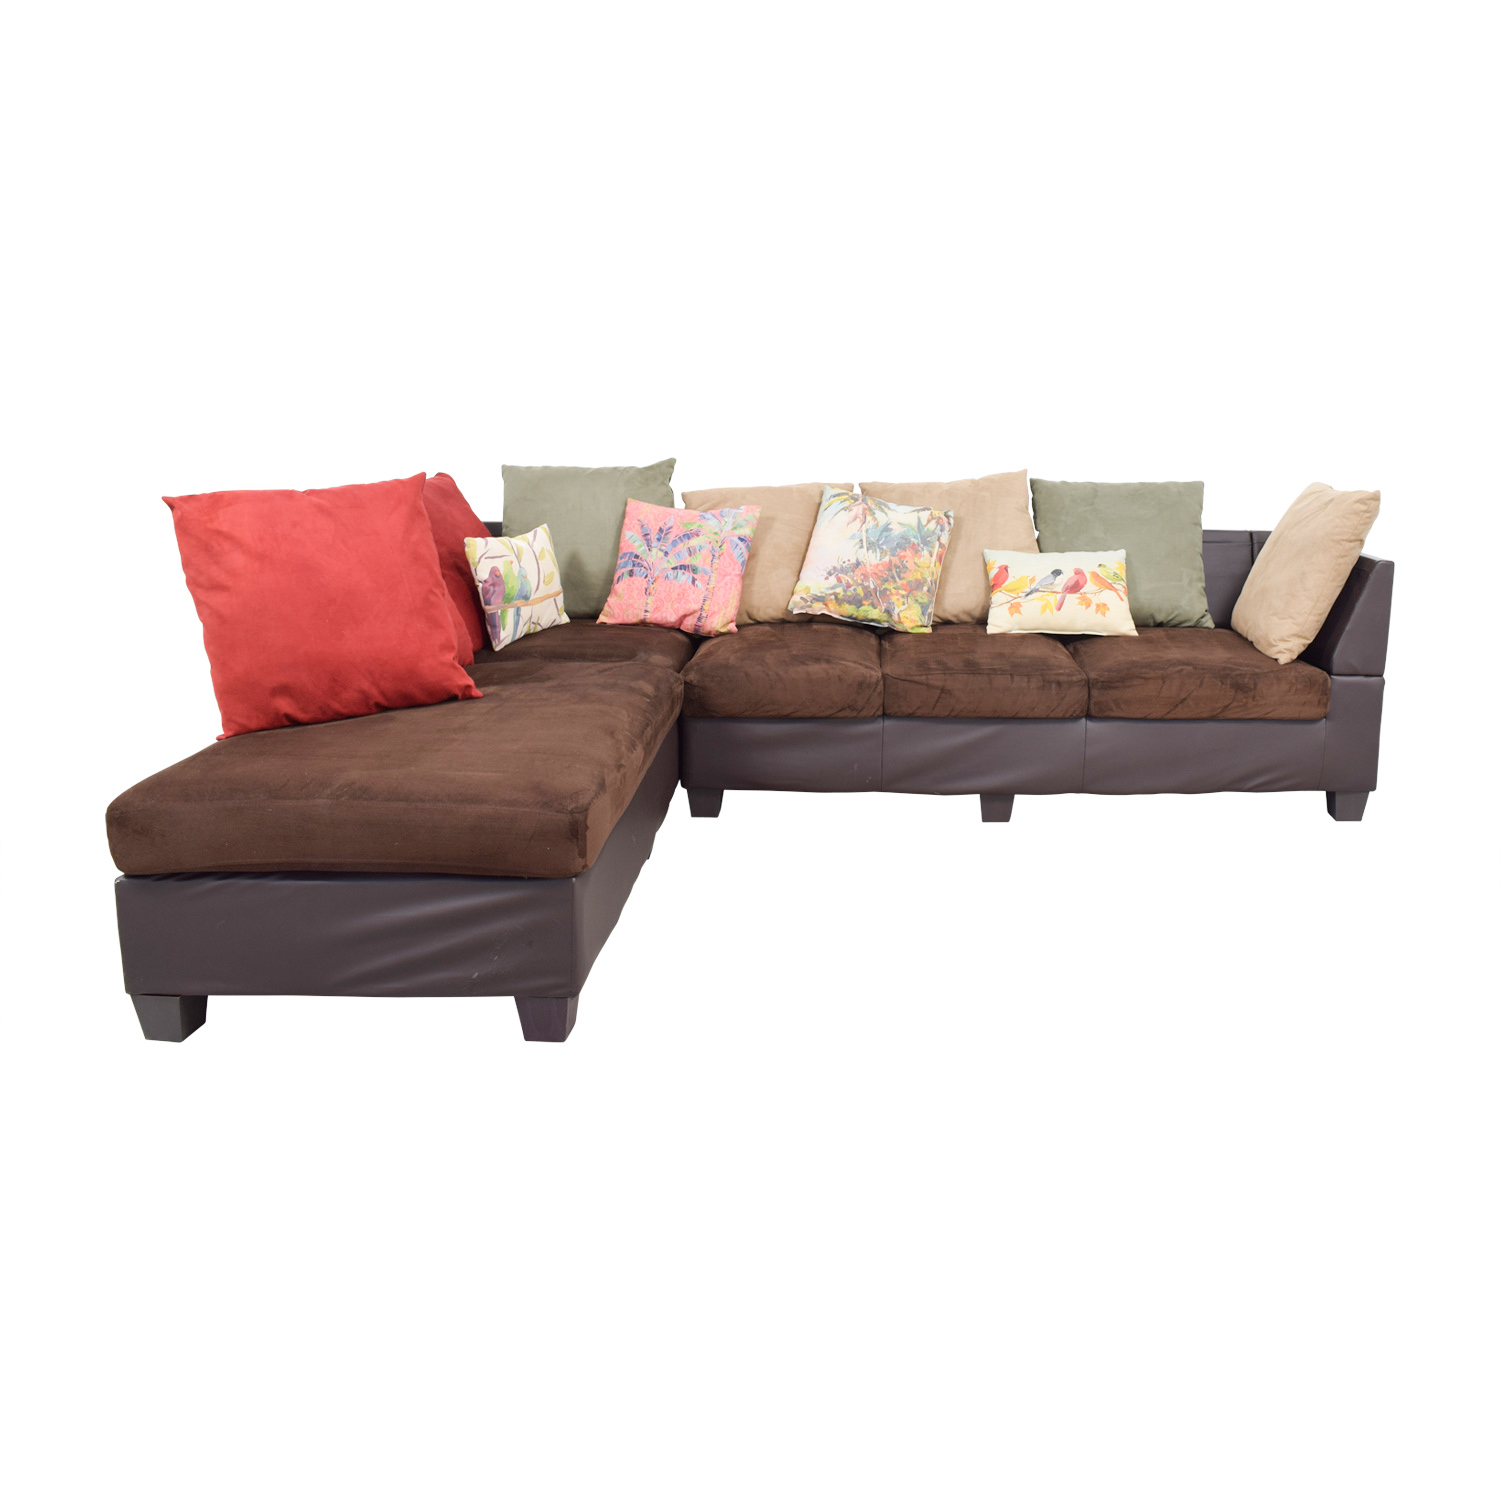 Downtown Furniture Downtown Furniture Brown Multi-Fabric L-Shapes Sectional with Toss Pillows nj